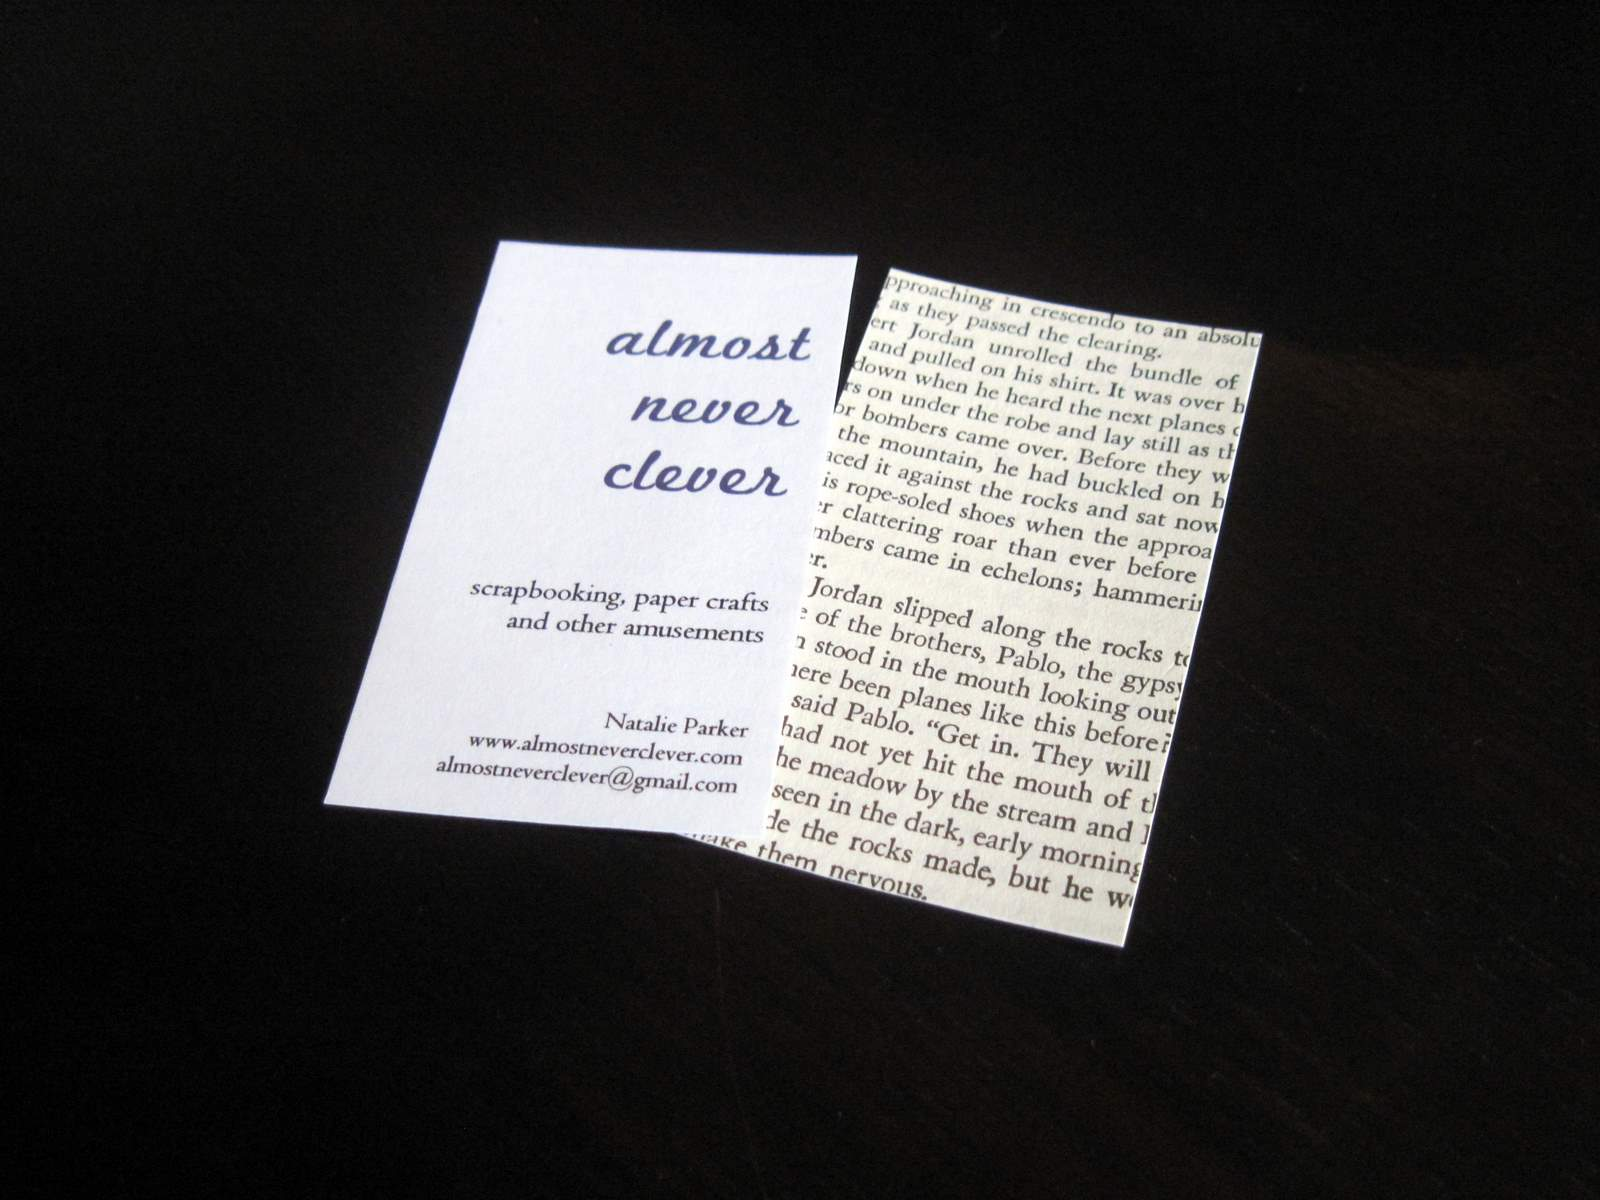 Book page business cards almost never clever two magicingreecefo Gallery